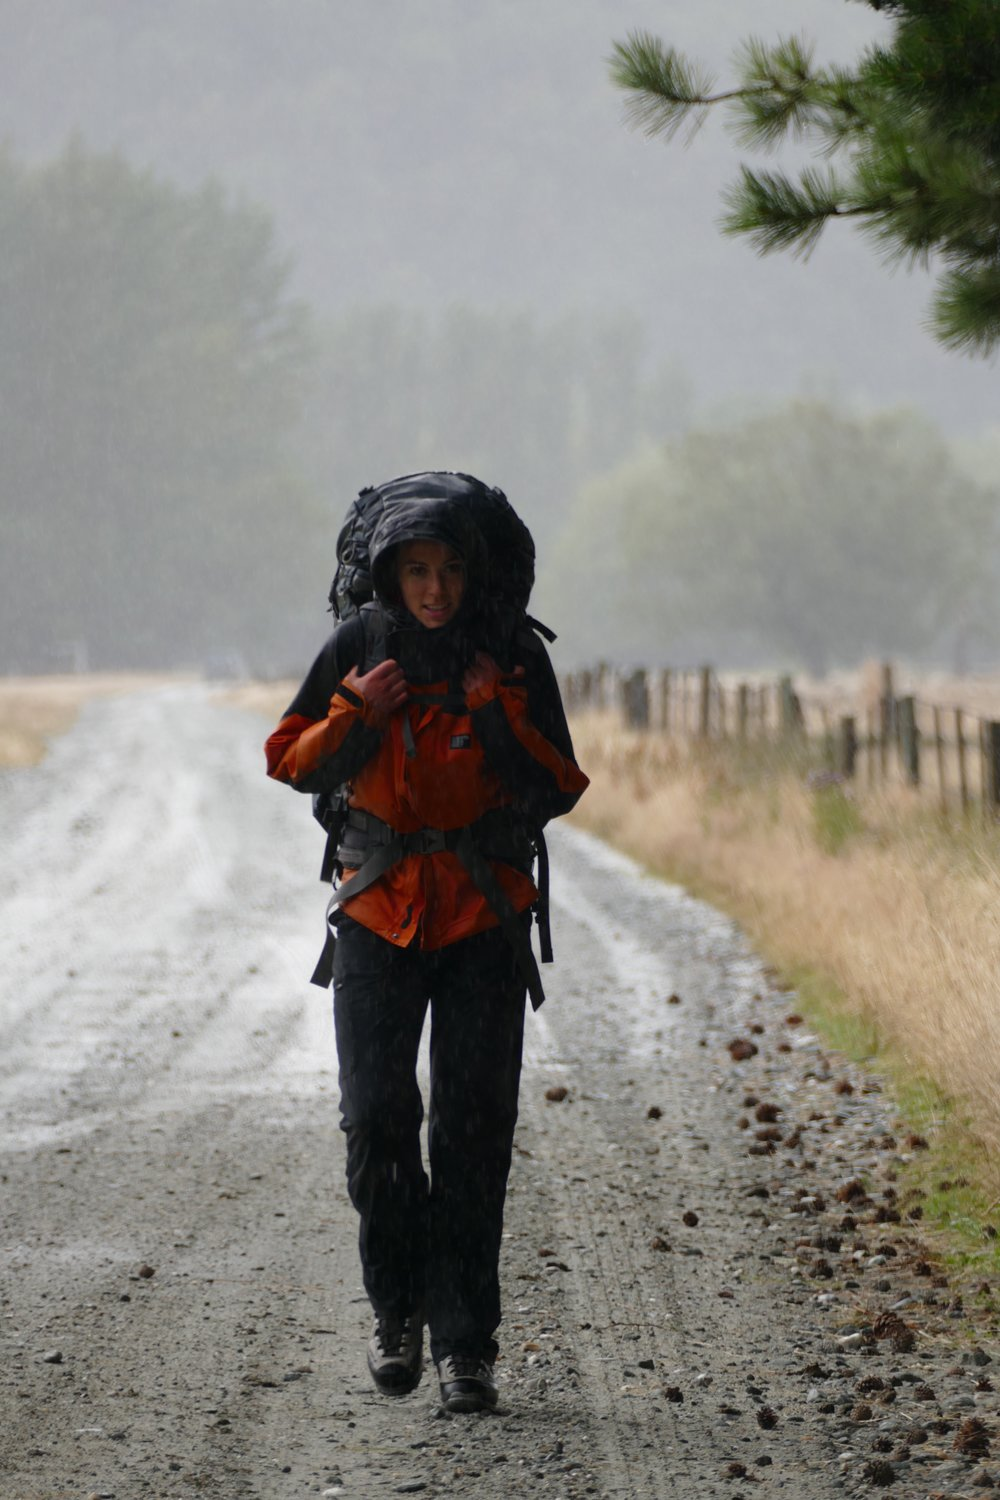 Lydzo trudges up the Matukituki road in the rain.